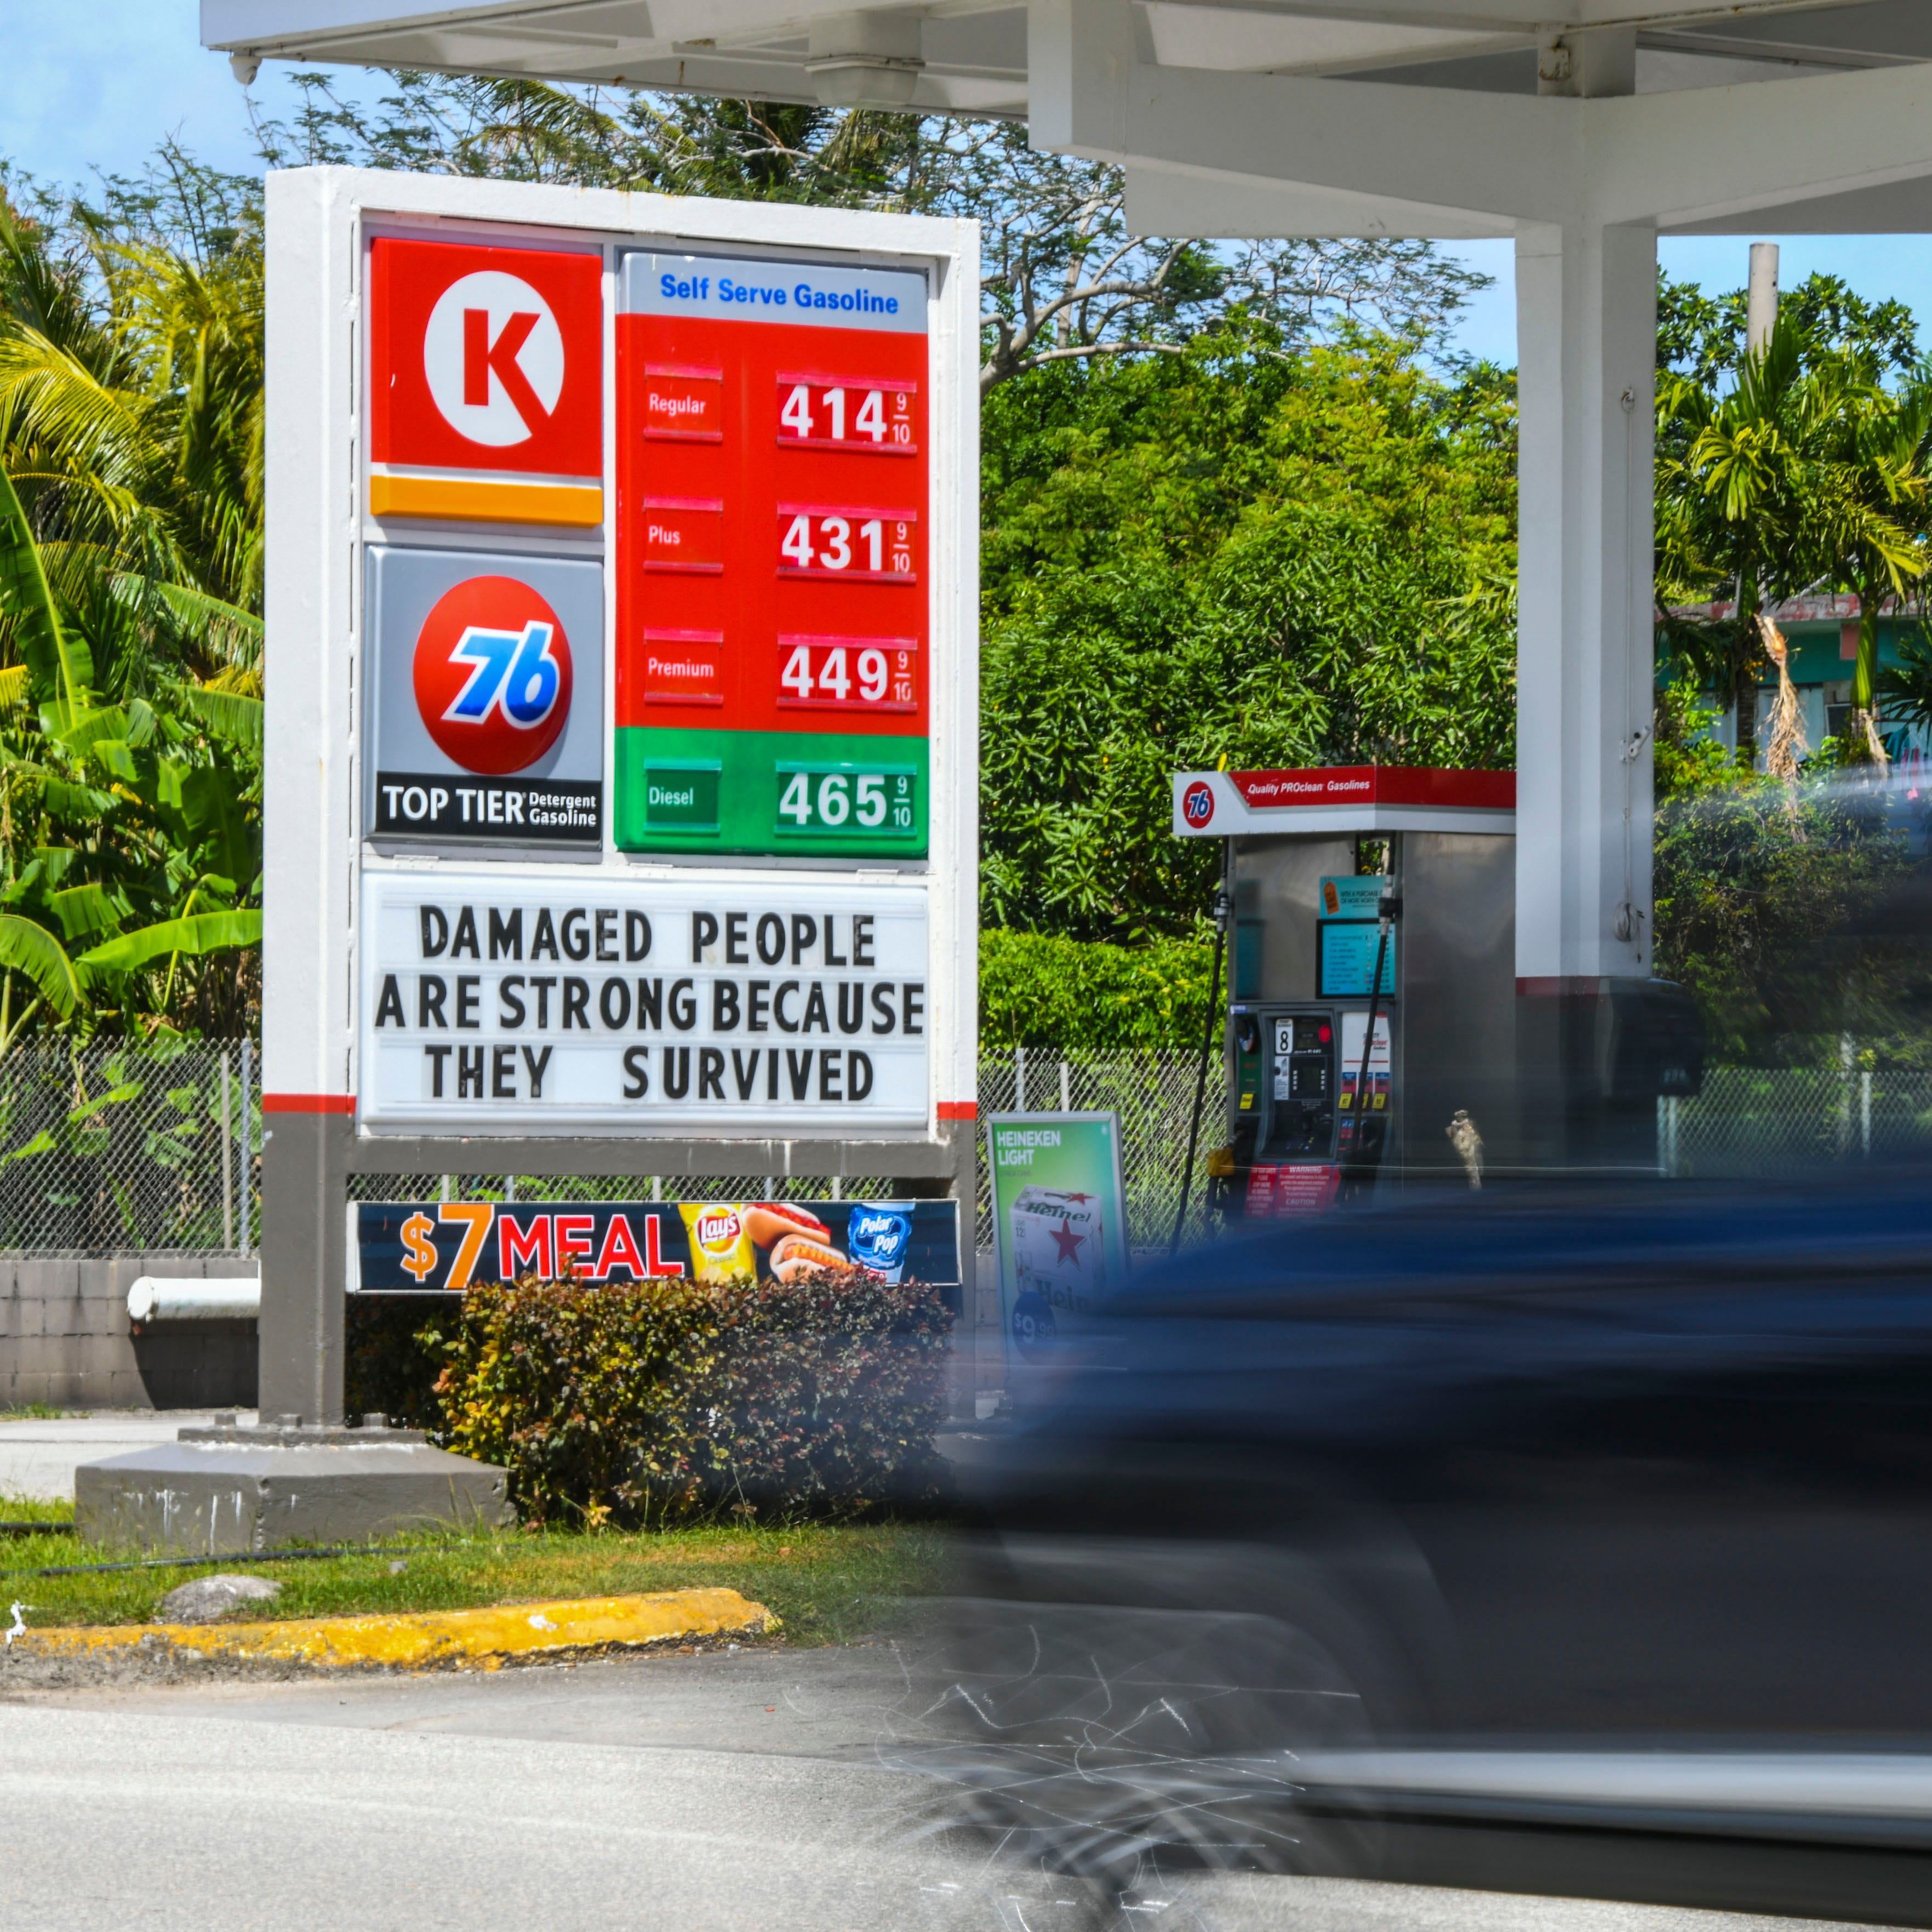 Mobil raises price of gas by 15 cents